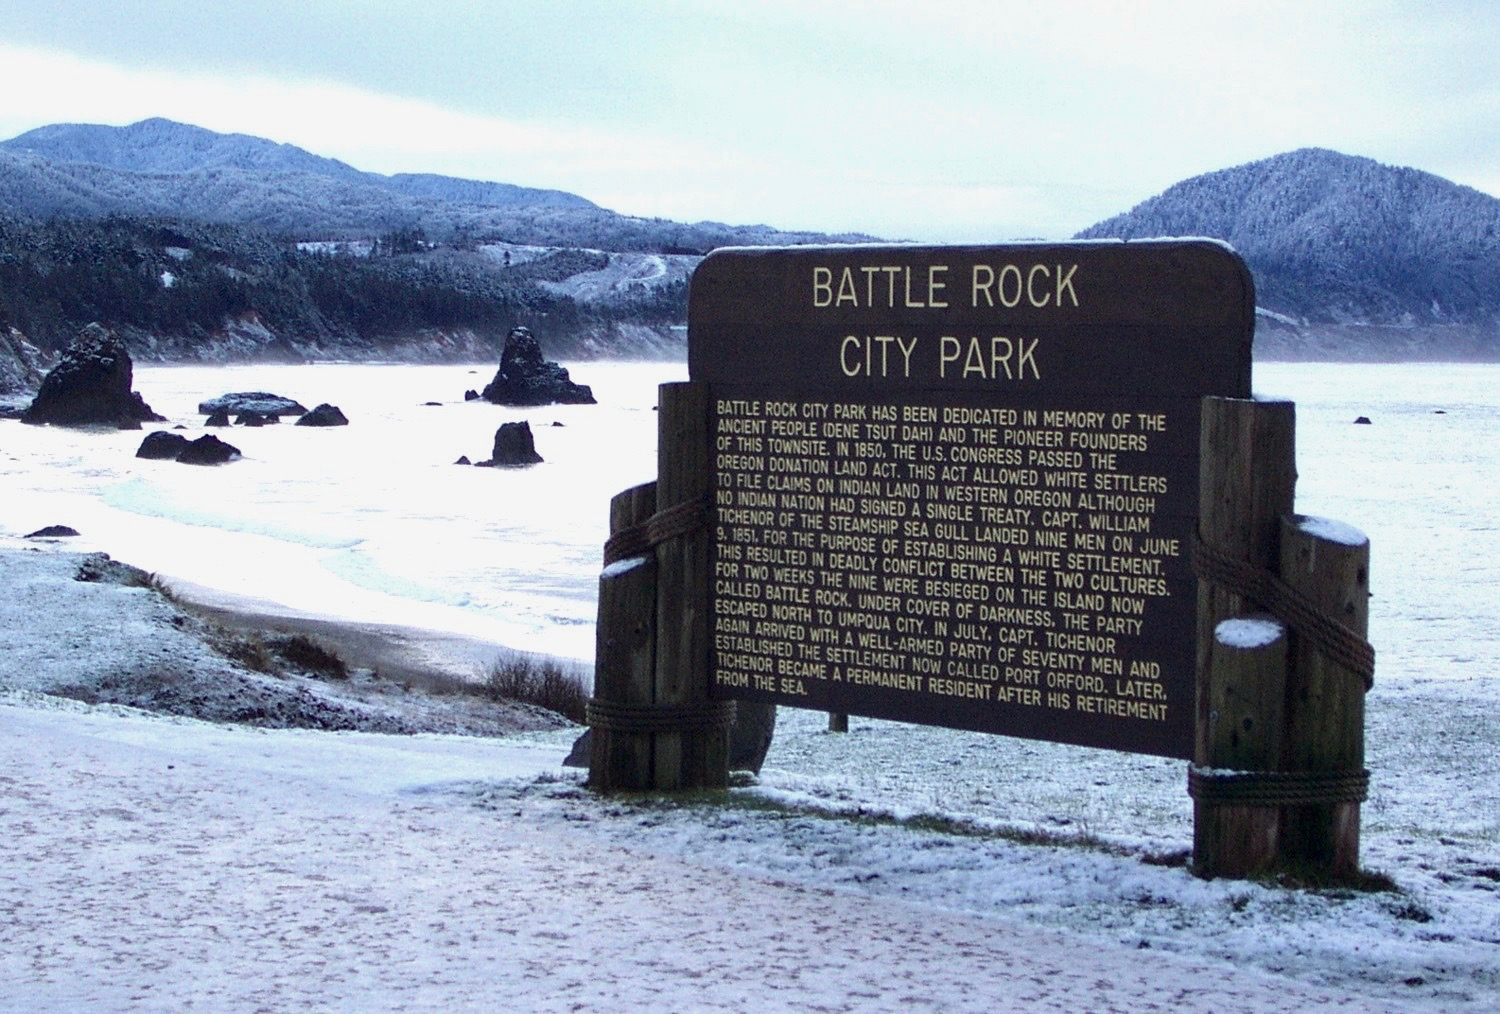 The Battle Rock City Park sign,